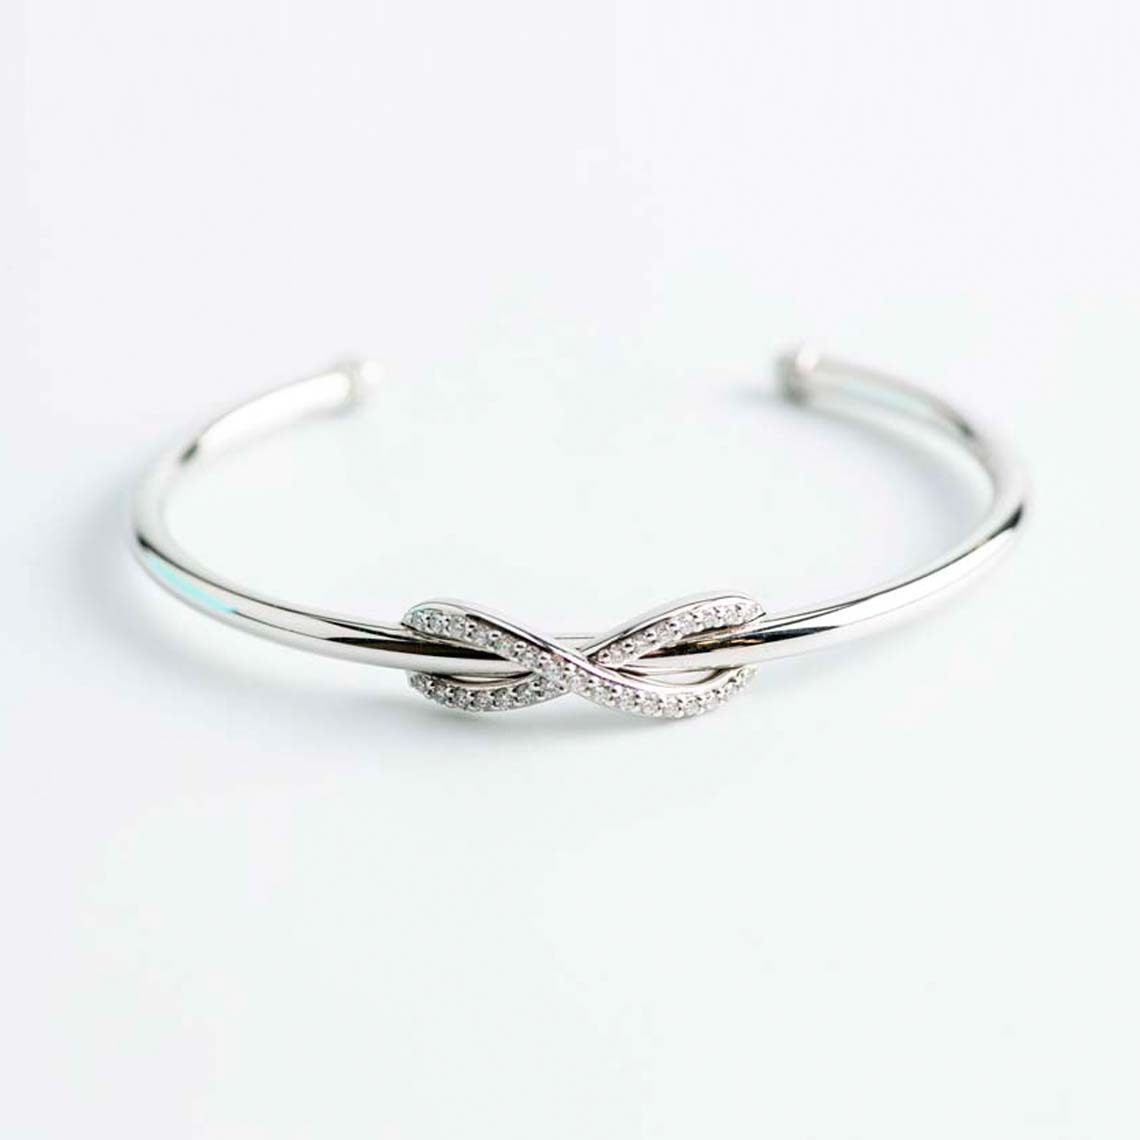 Tiffany Infinity bangle